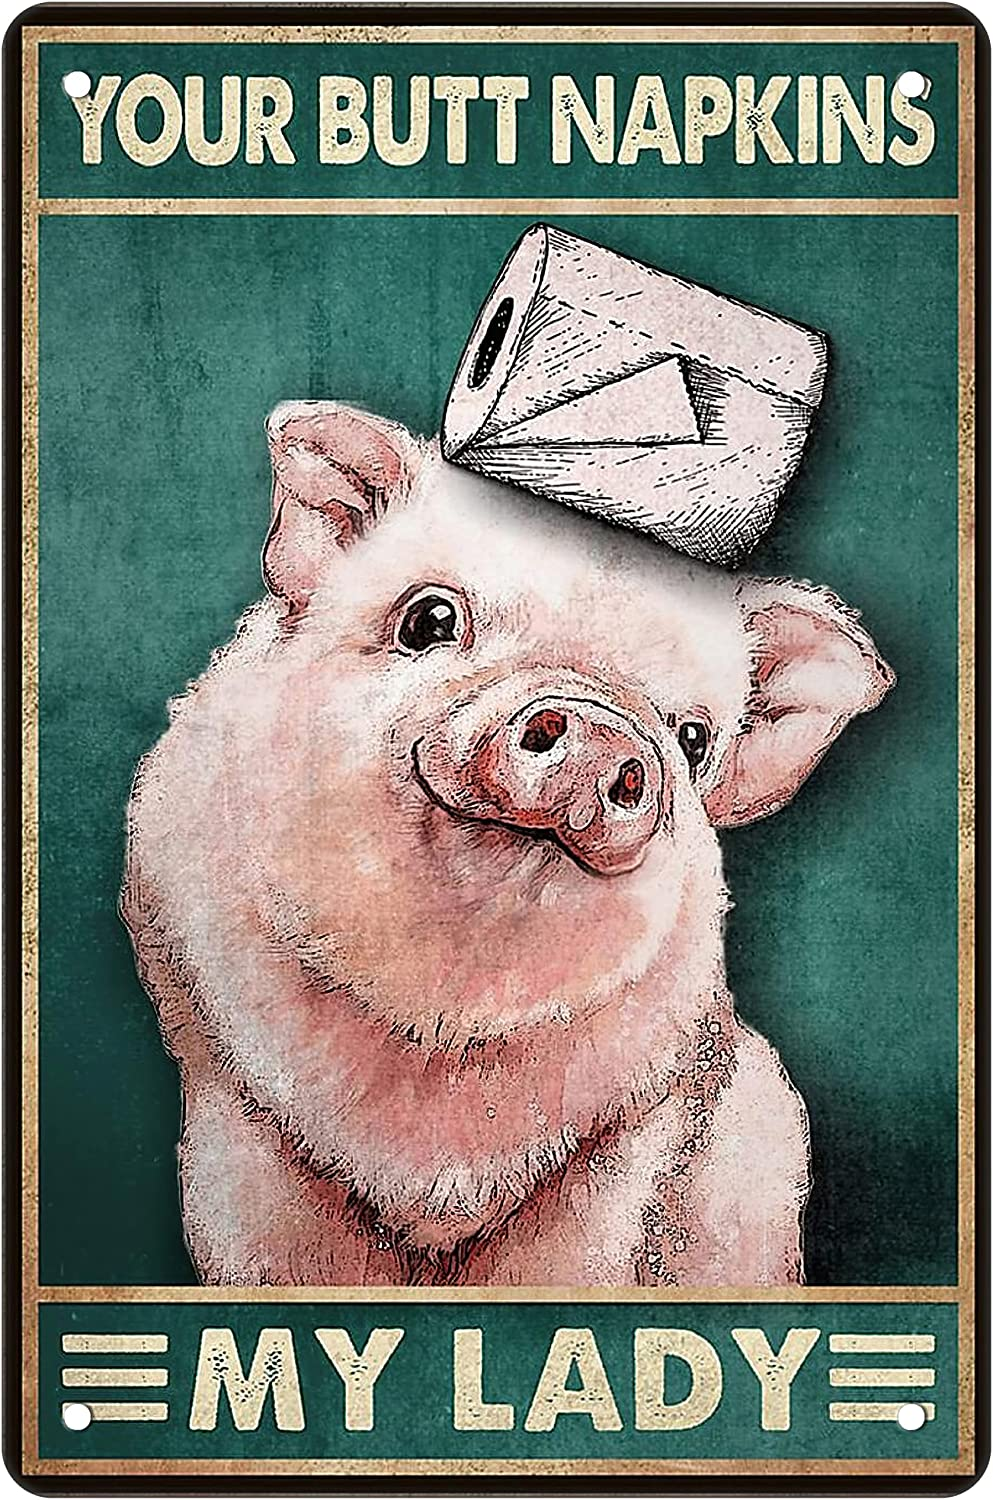 Funny Pig Bathroom Vintage Metal Tin Sign Pig Wall Decor Art Toilet Pig Paper Posters - Your Butt Napkins My Lady - Retro Bathroom Decor for Home Office Coffee Bar Wall Decor Gifts 8 x 12 Inches